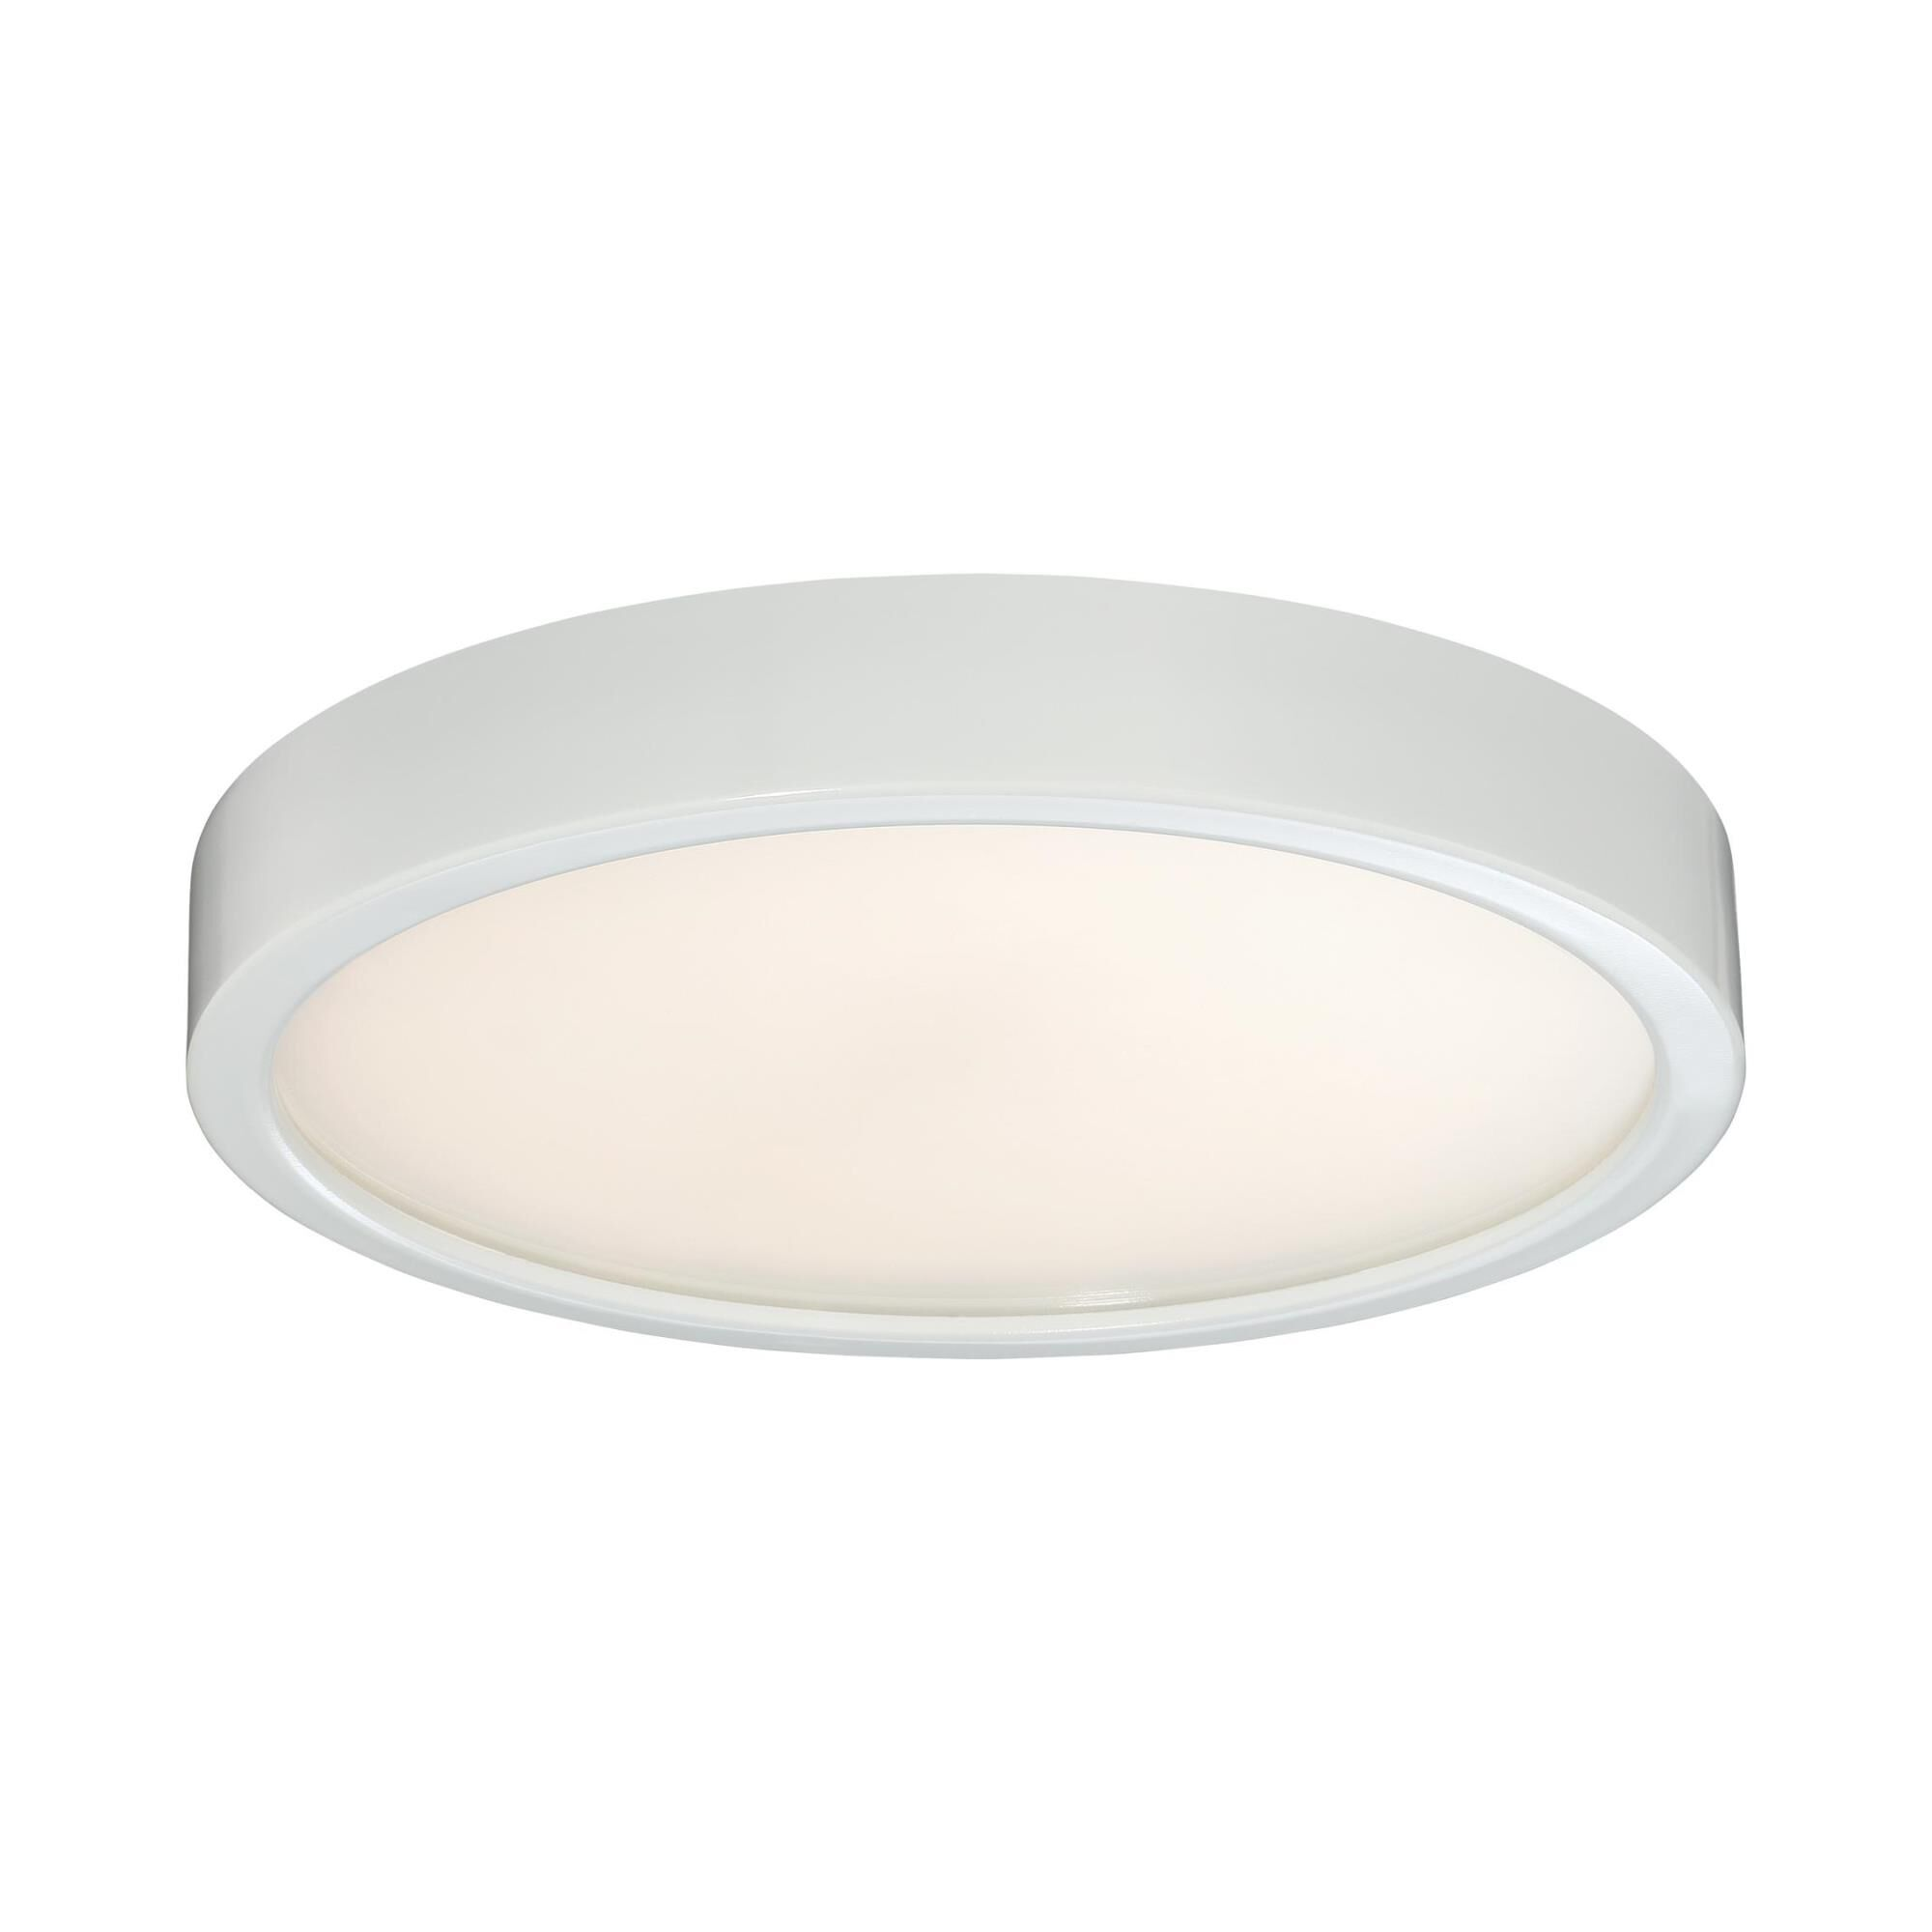 Kovacs 10 Inch 1 Light Led Flush Mount - P842-044-l - Transitional